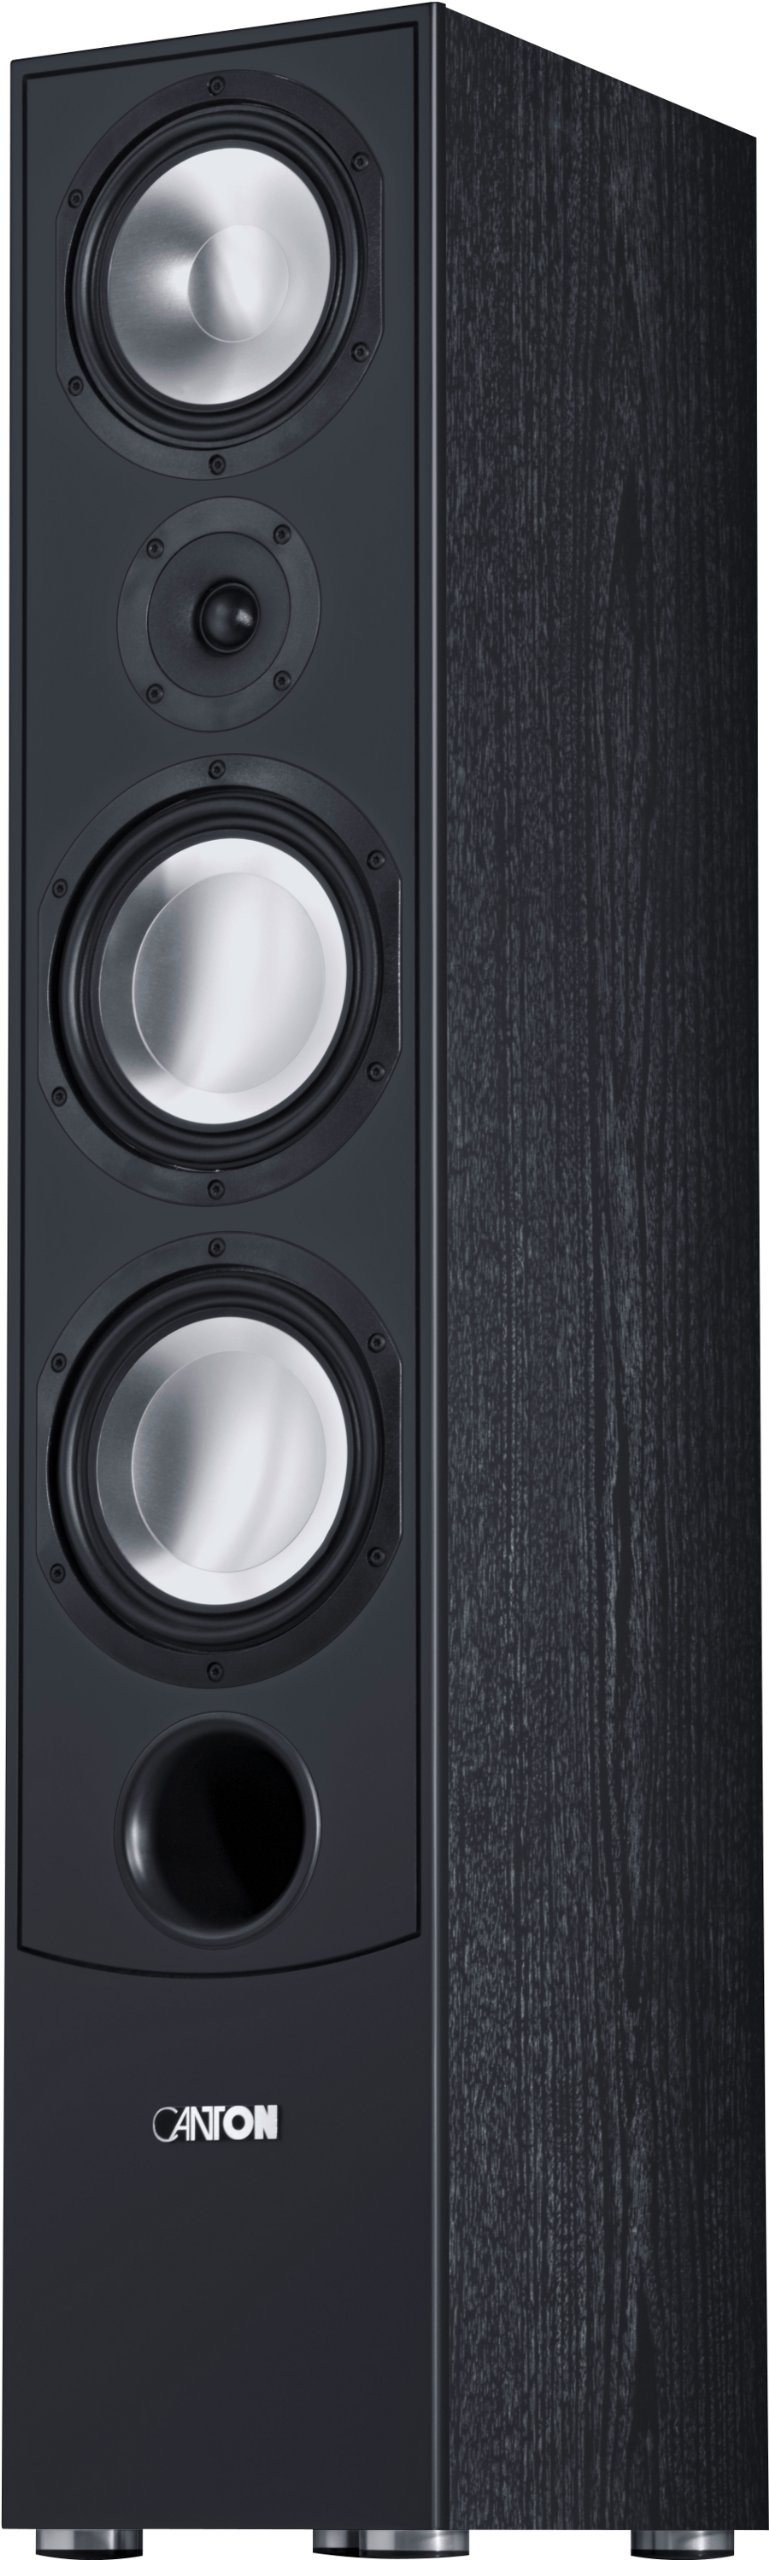 Canton GLE 490.2 Speaker- Single (Black)